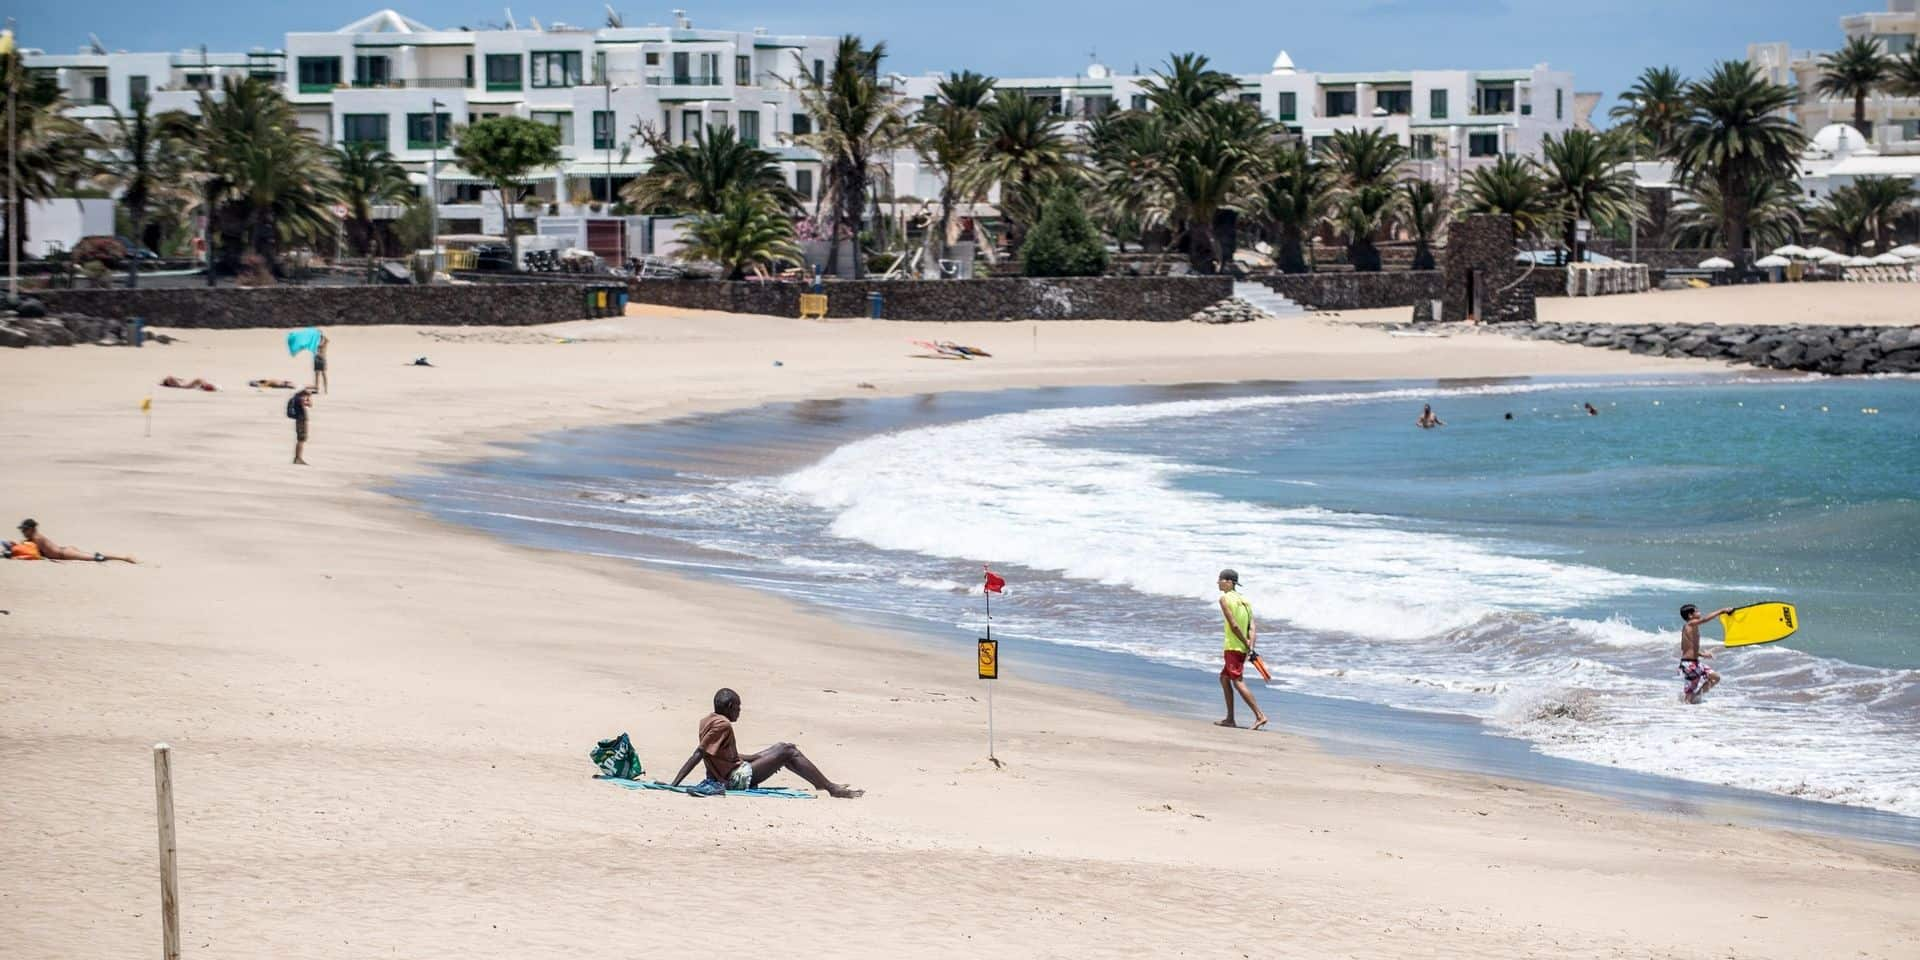 Beaches on Canary islands awarded a total of 56 blue flags